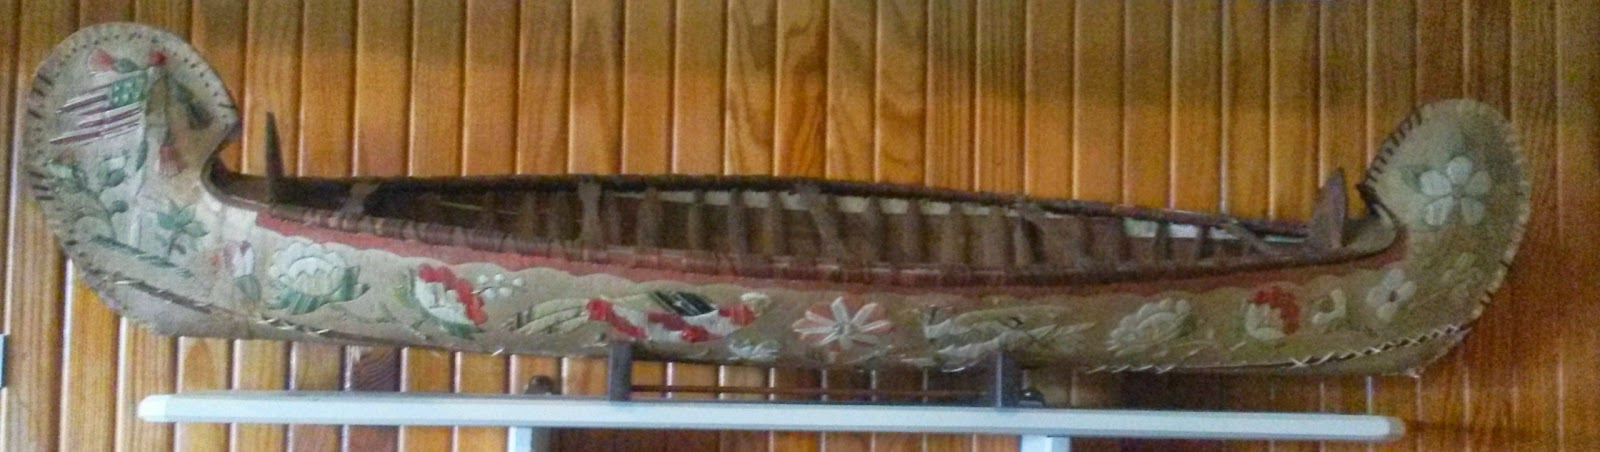 bark model canoe with porcupine quill decoration